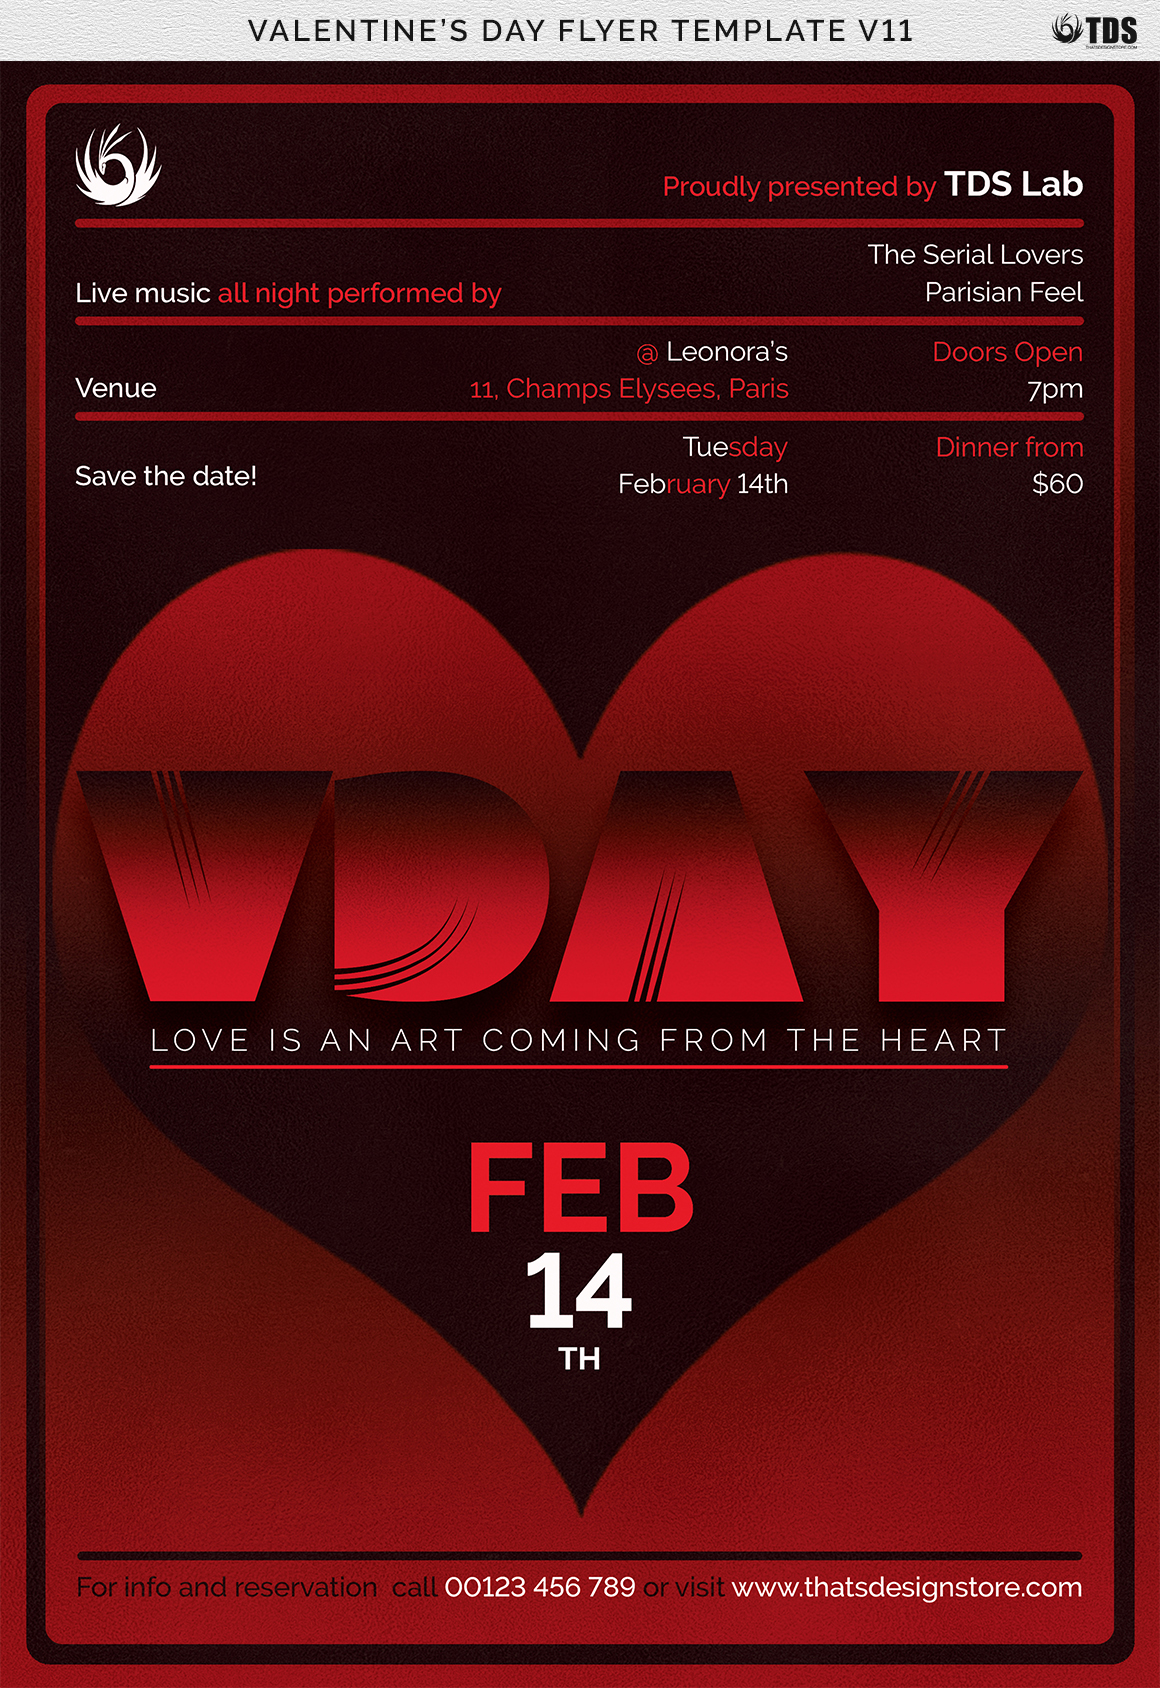 Valentines Day Flyer Template V11 example image 8